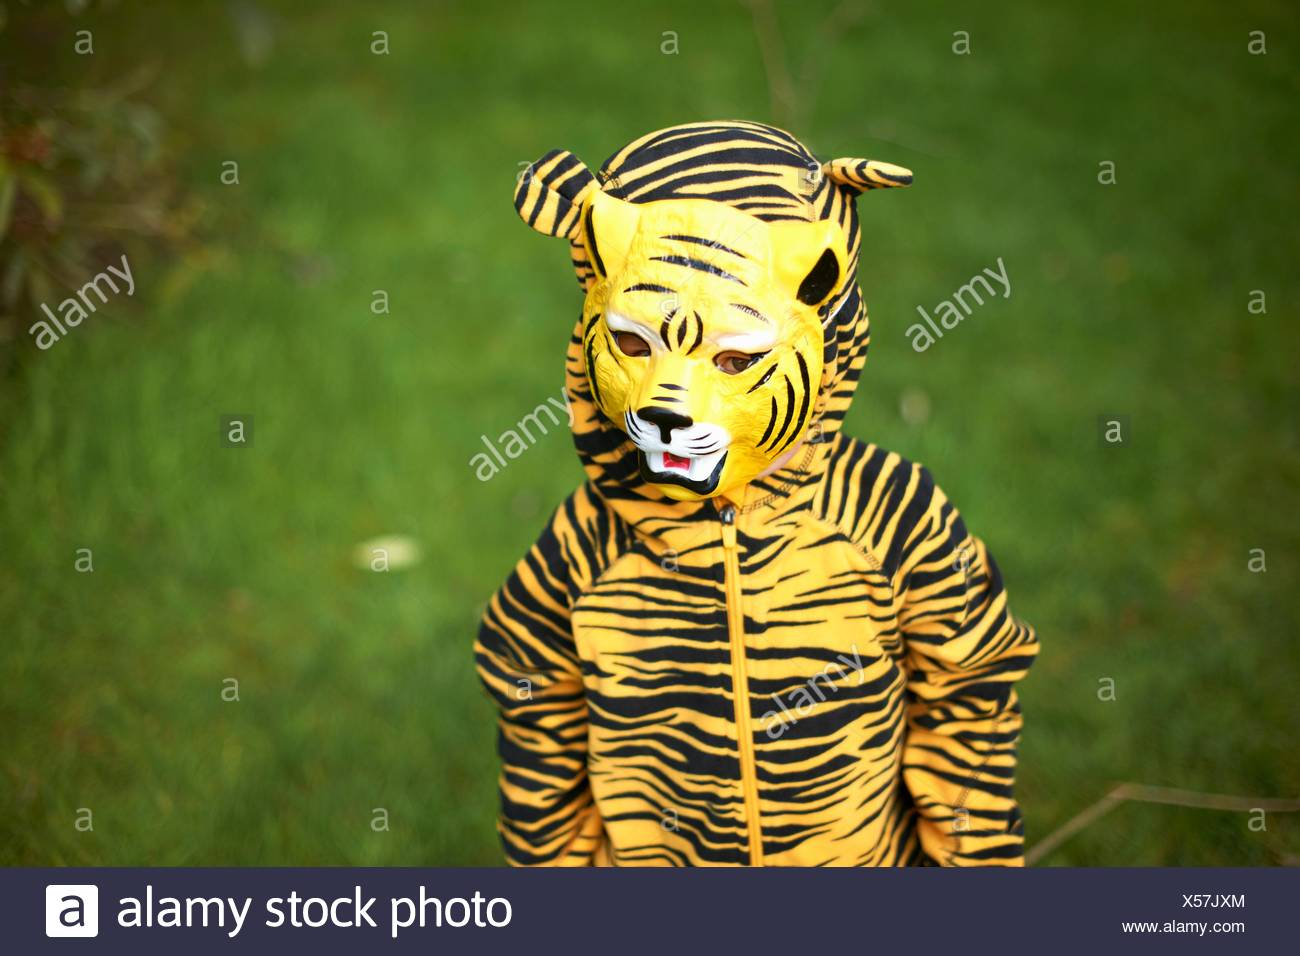 Young child dressed as tiger - Stock Image